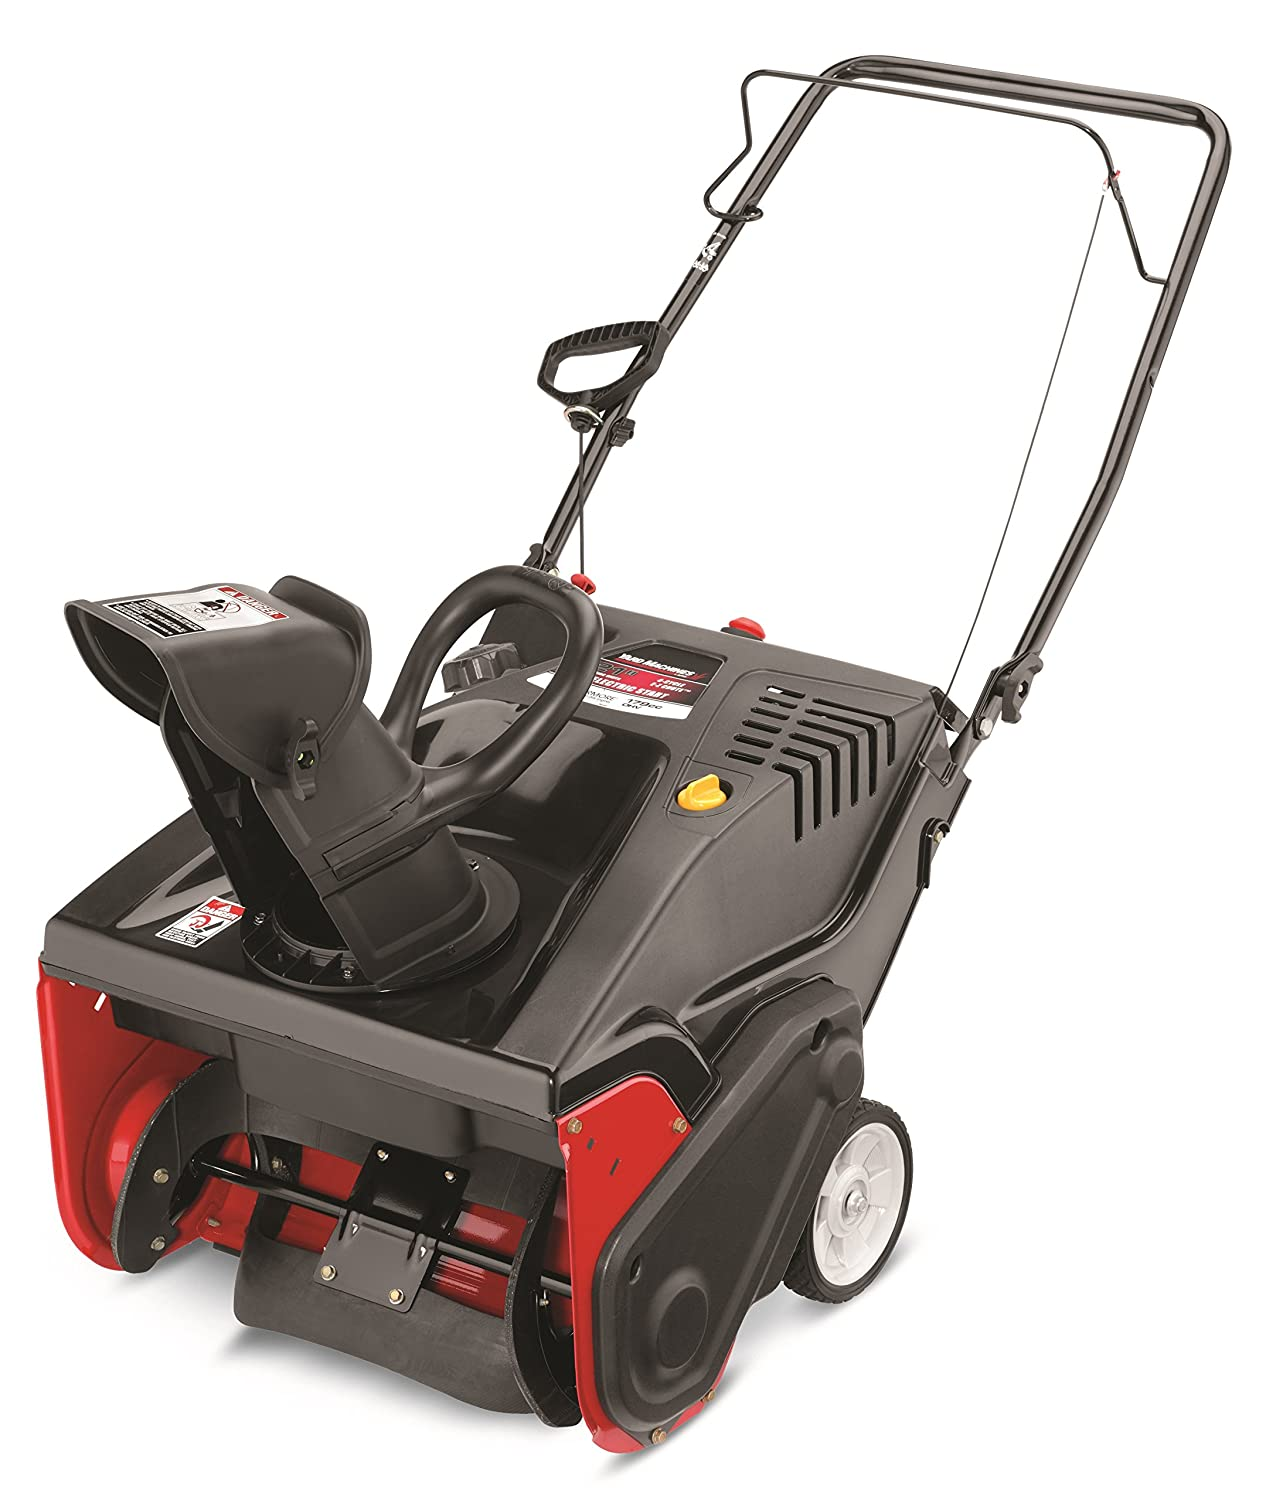 amazon com yard machines 179cc 21 inch single stage electric start rh amazon com Briggs and Stratton OHV Engine Parts Diagrams OHV Engine versus a Non-Ohv Engine